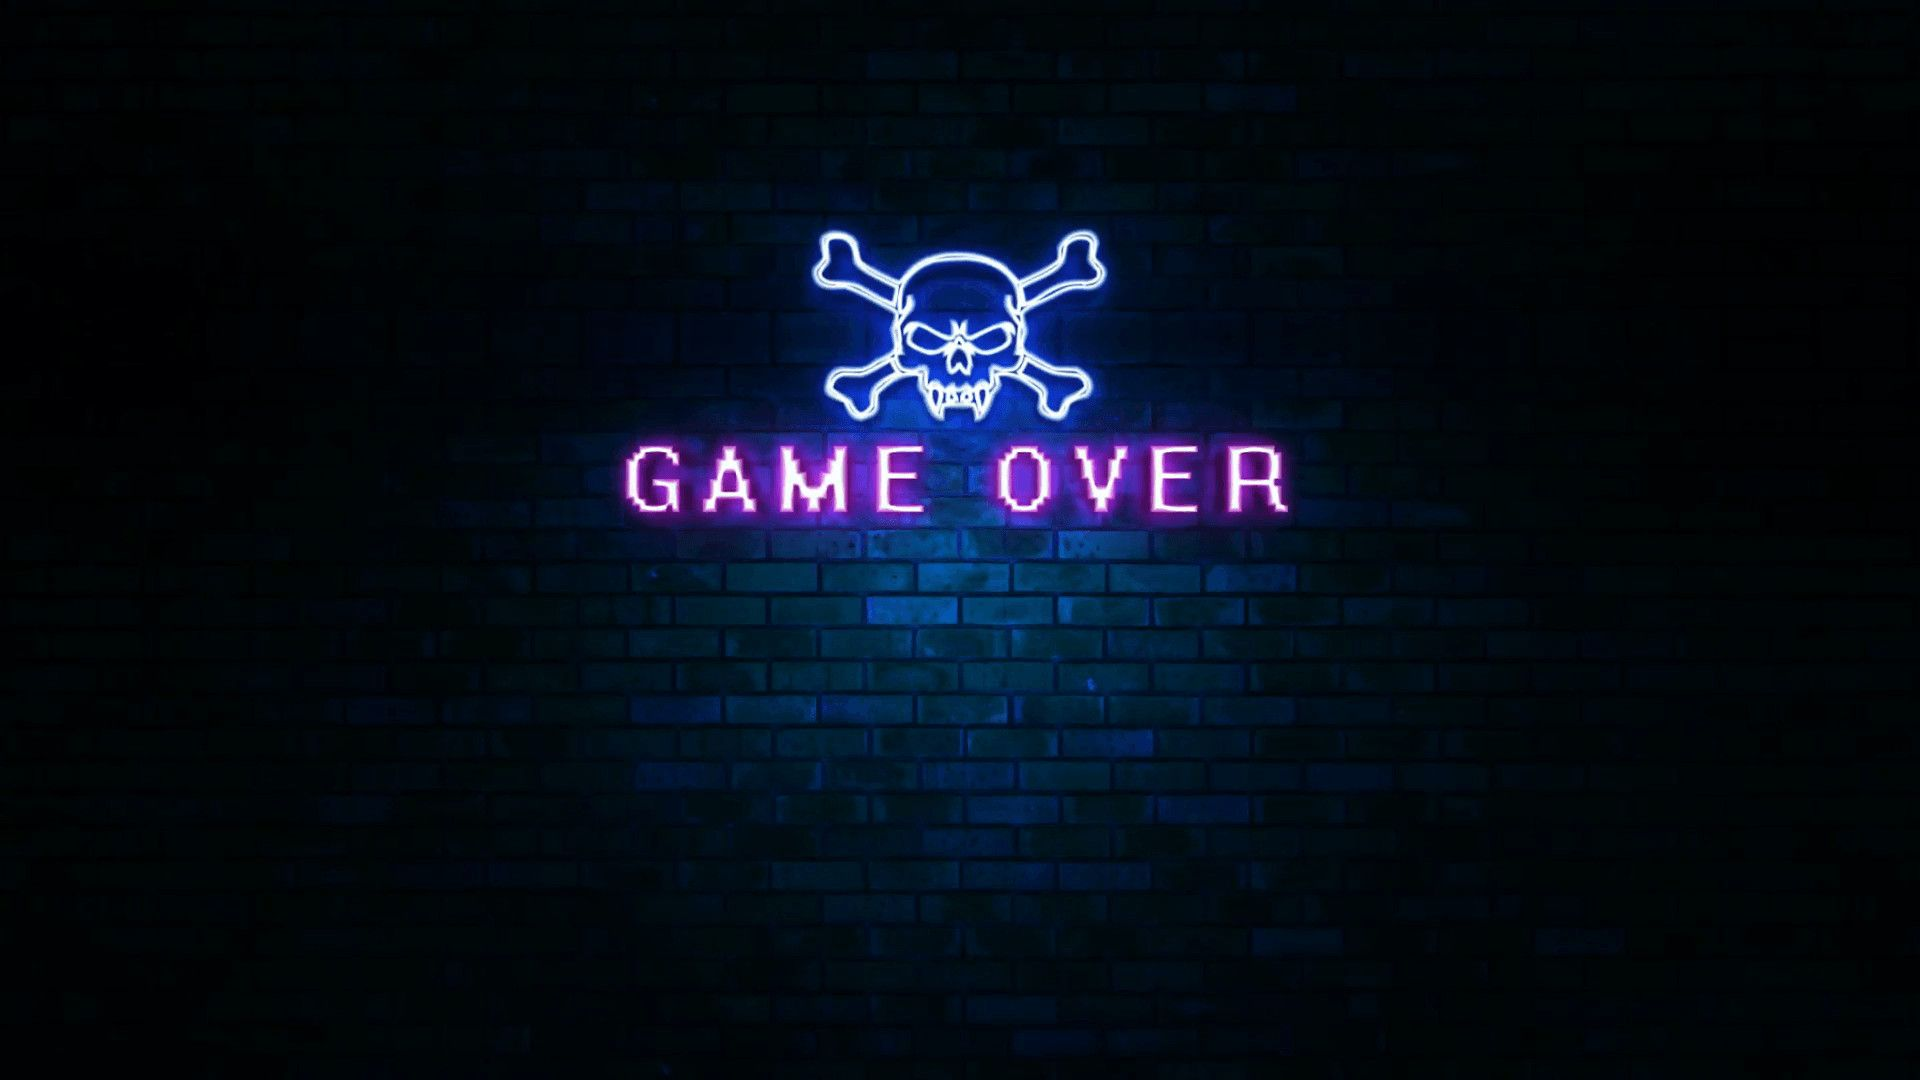 Neon Gaming Wallpapers Top Free Neon Gaming Backgrounds Wallpaperaccess